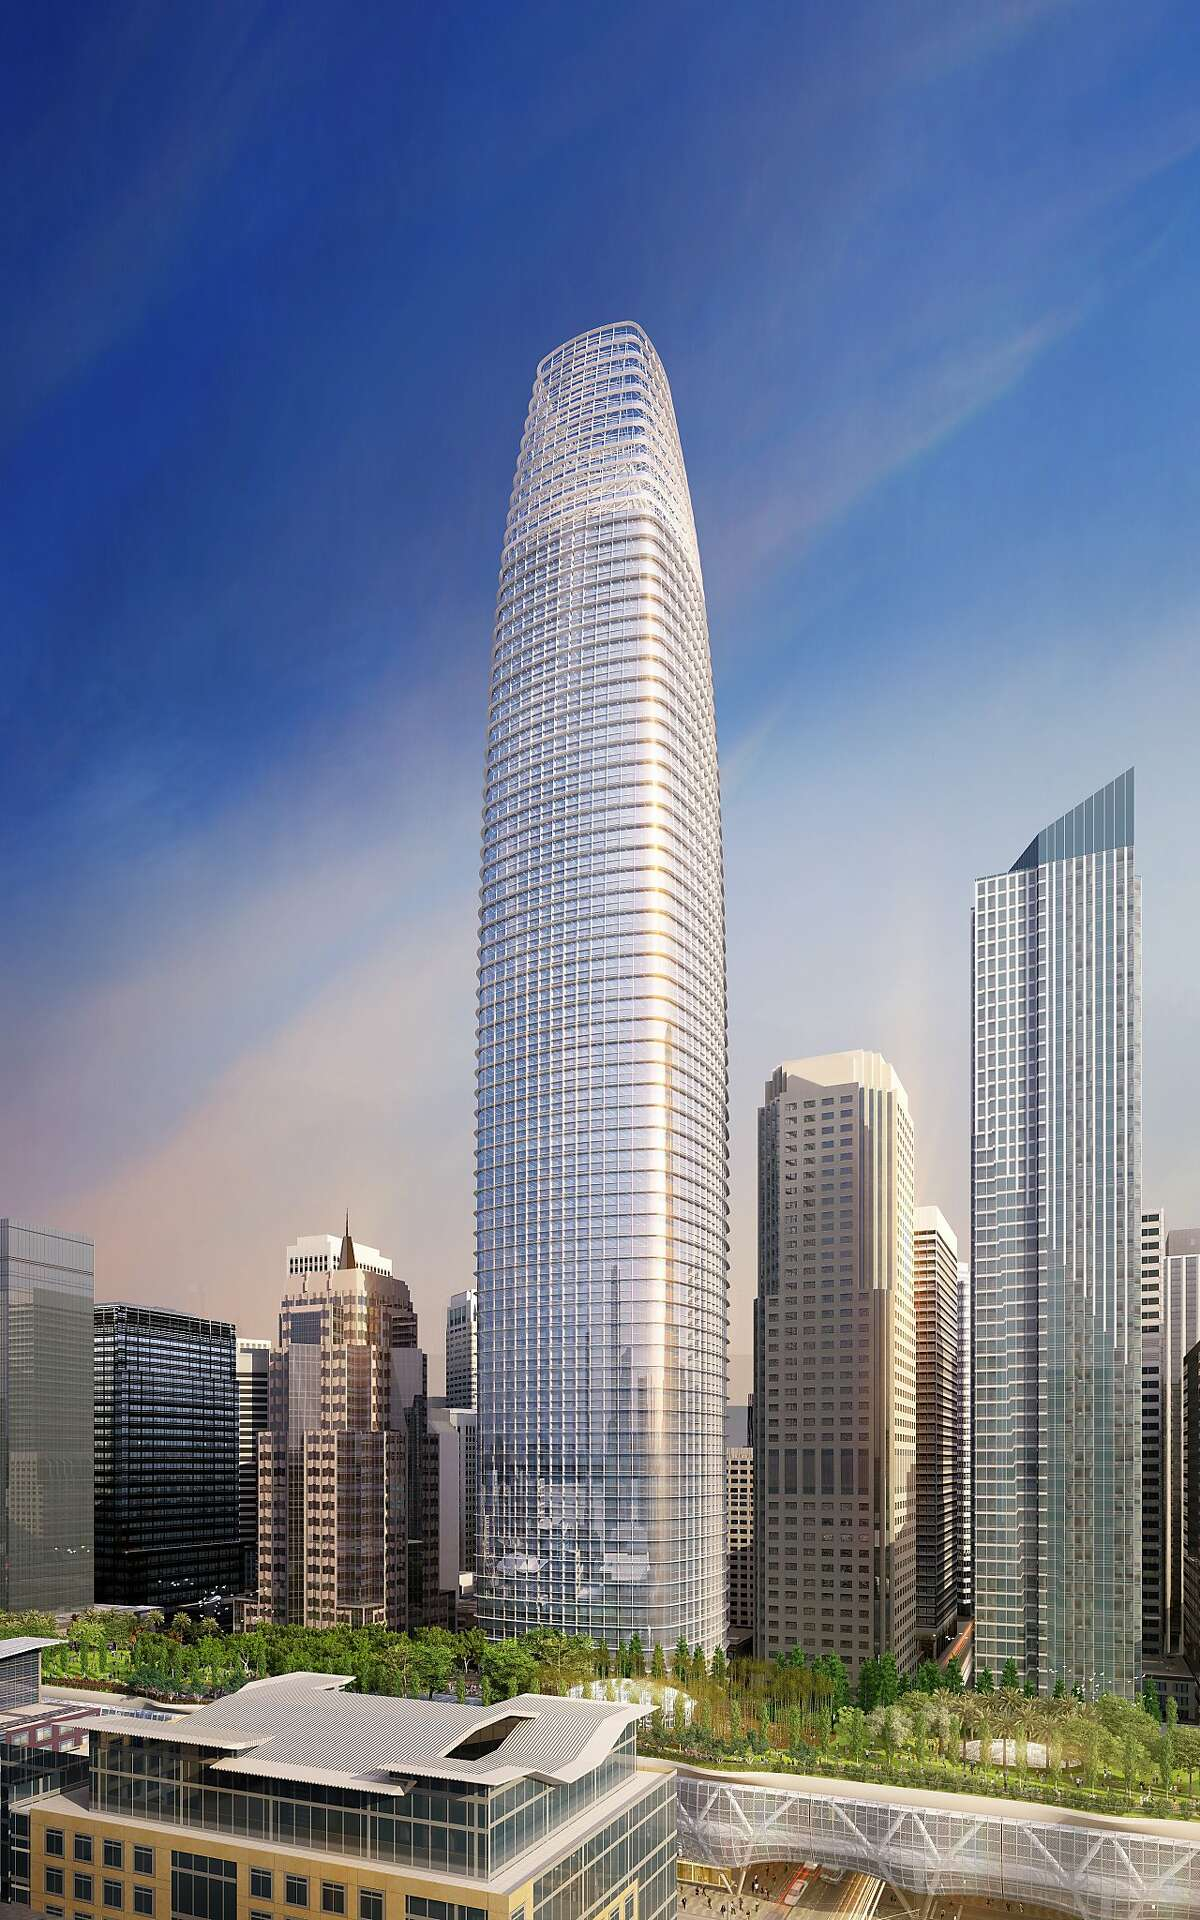 The proposed Transbay Tower at First and Mission streets calls for a 1,070 foot high building -- more than 200 feet taller than the Transamerica Pyramid, now San Francisco's tallest building. The top 150 feet are hollow.